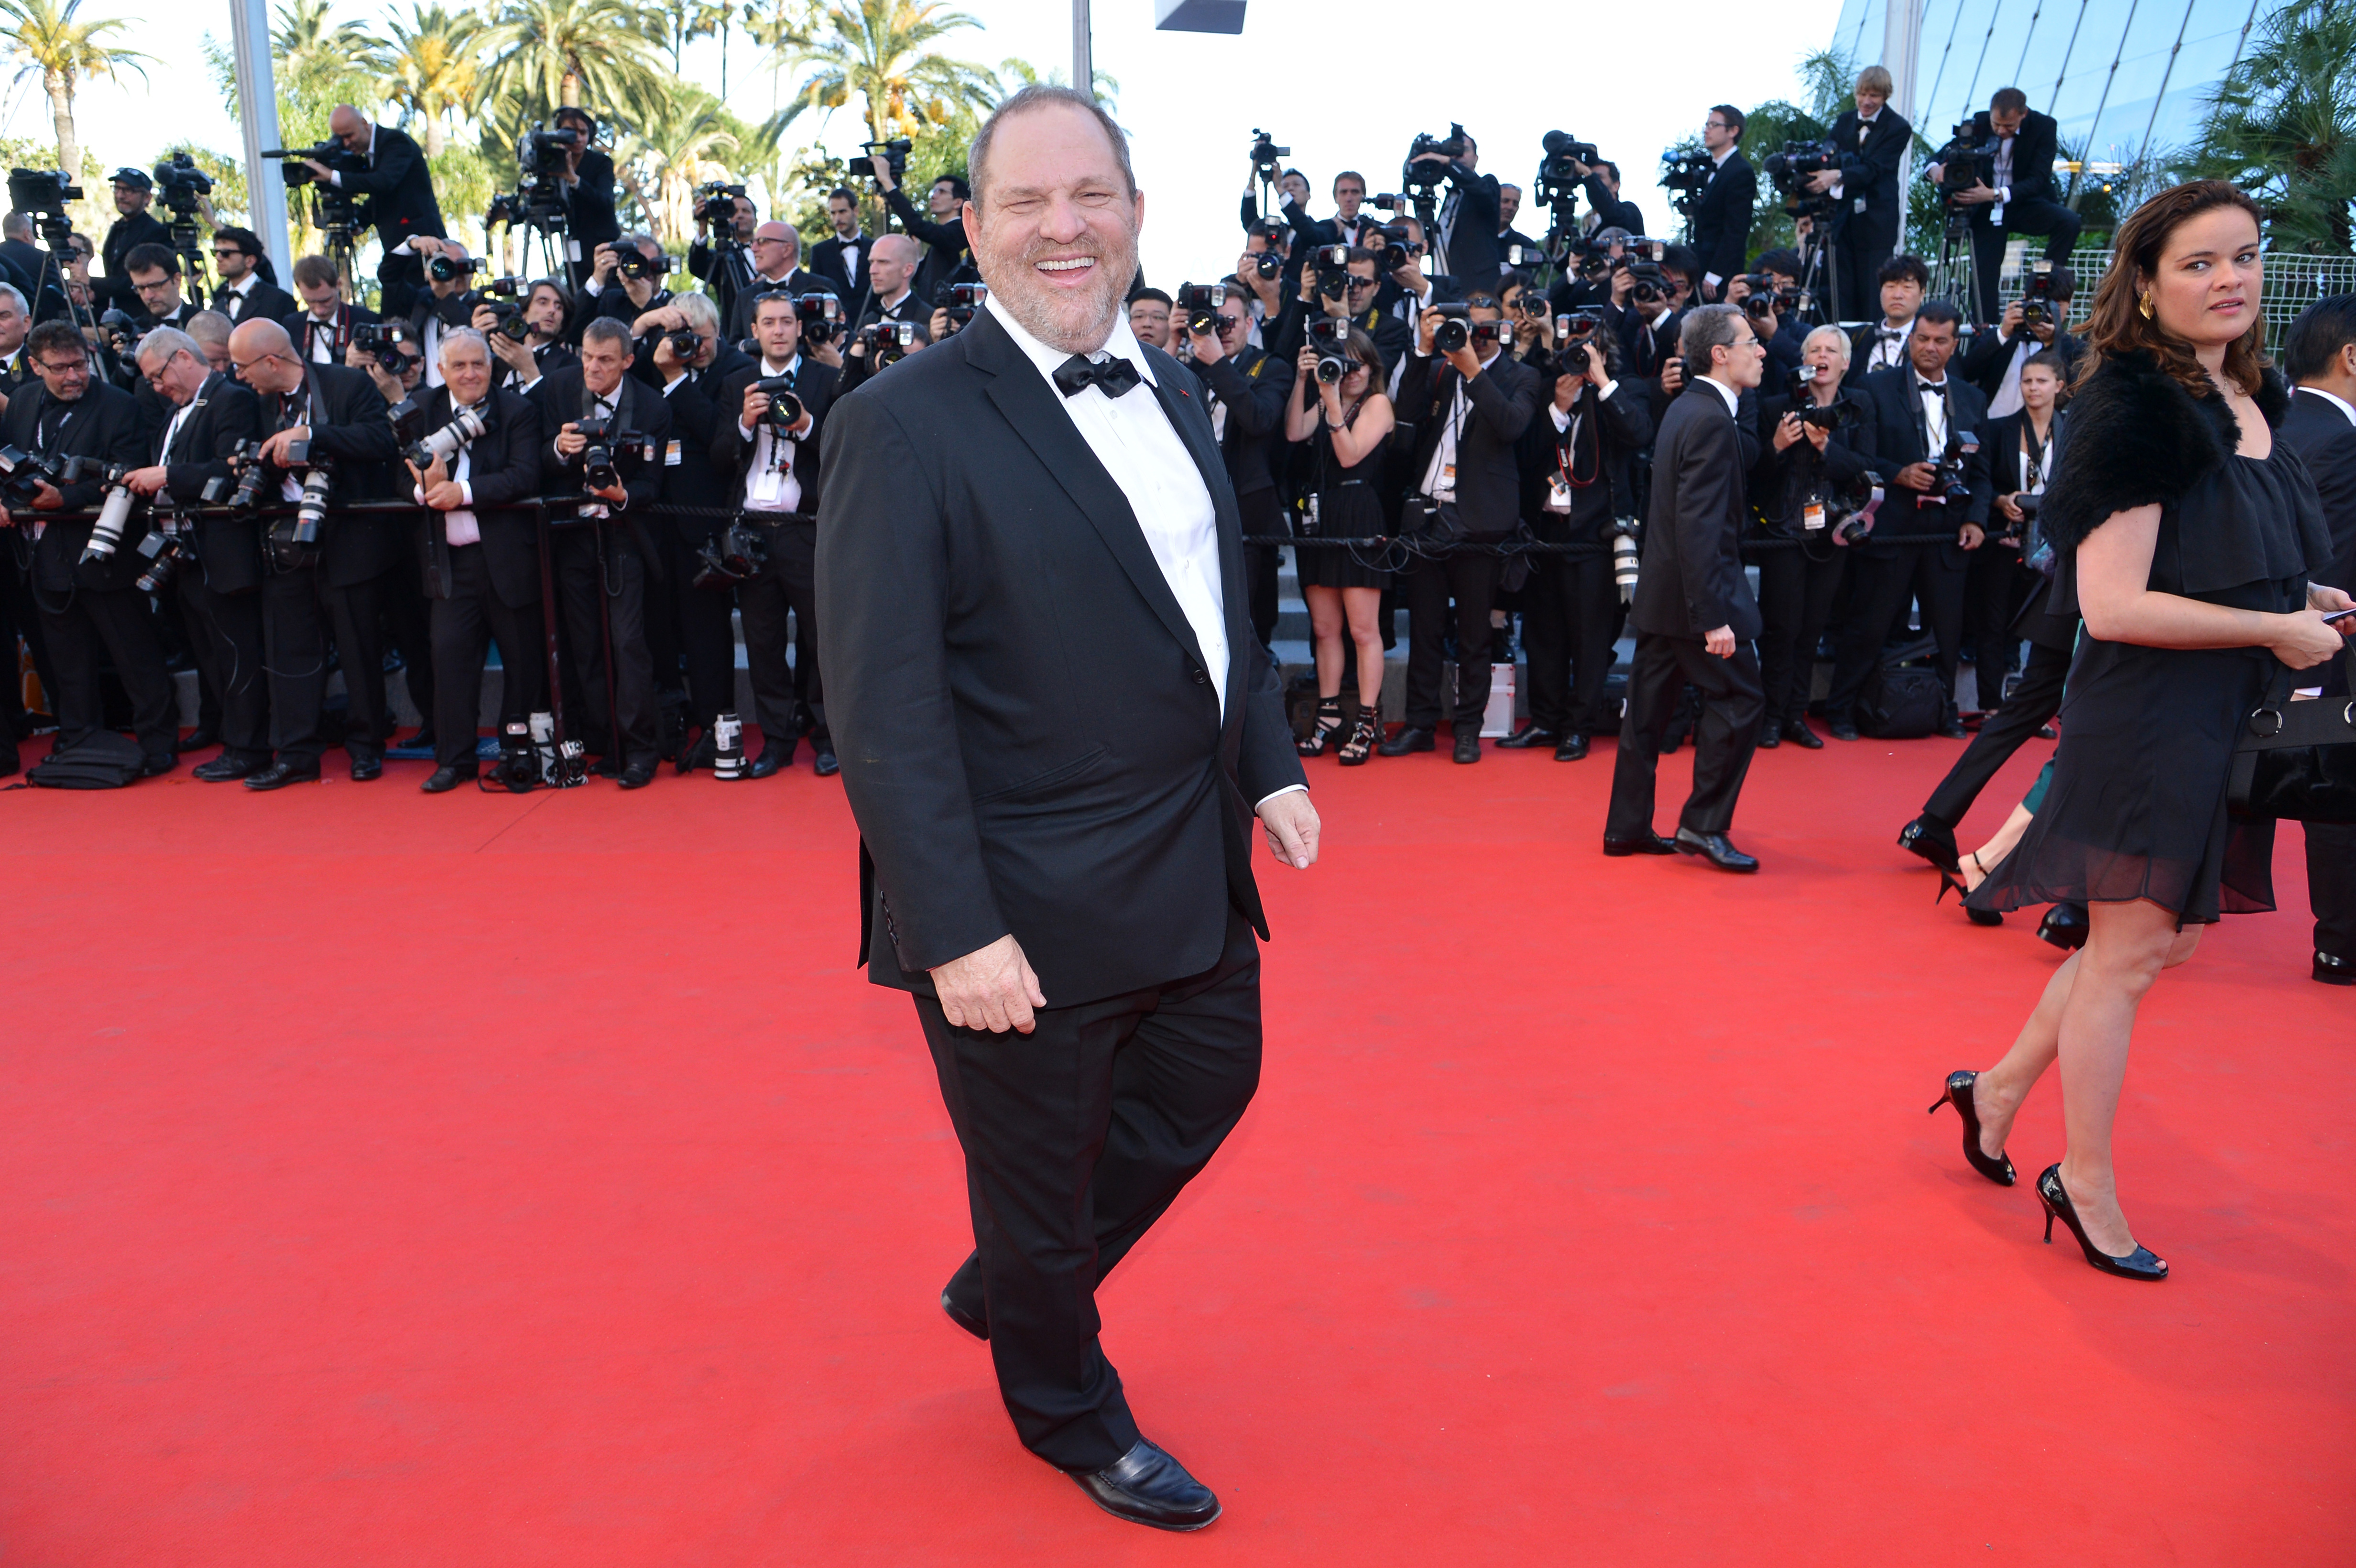 Affaire Weinstein: le silence des hommes à Hollywood